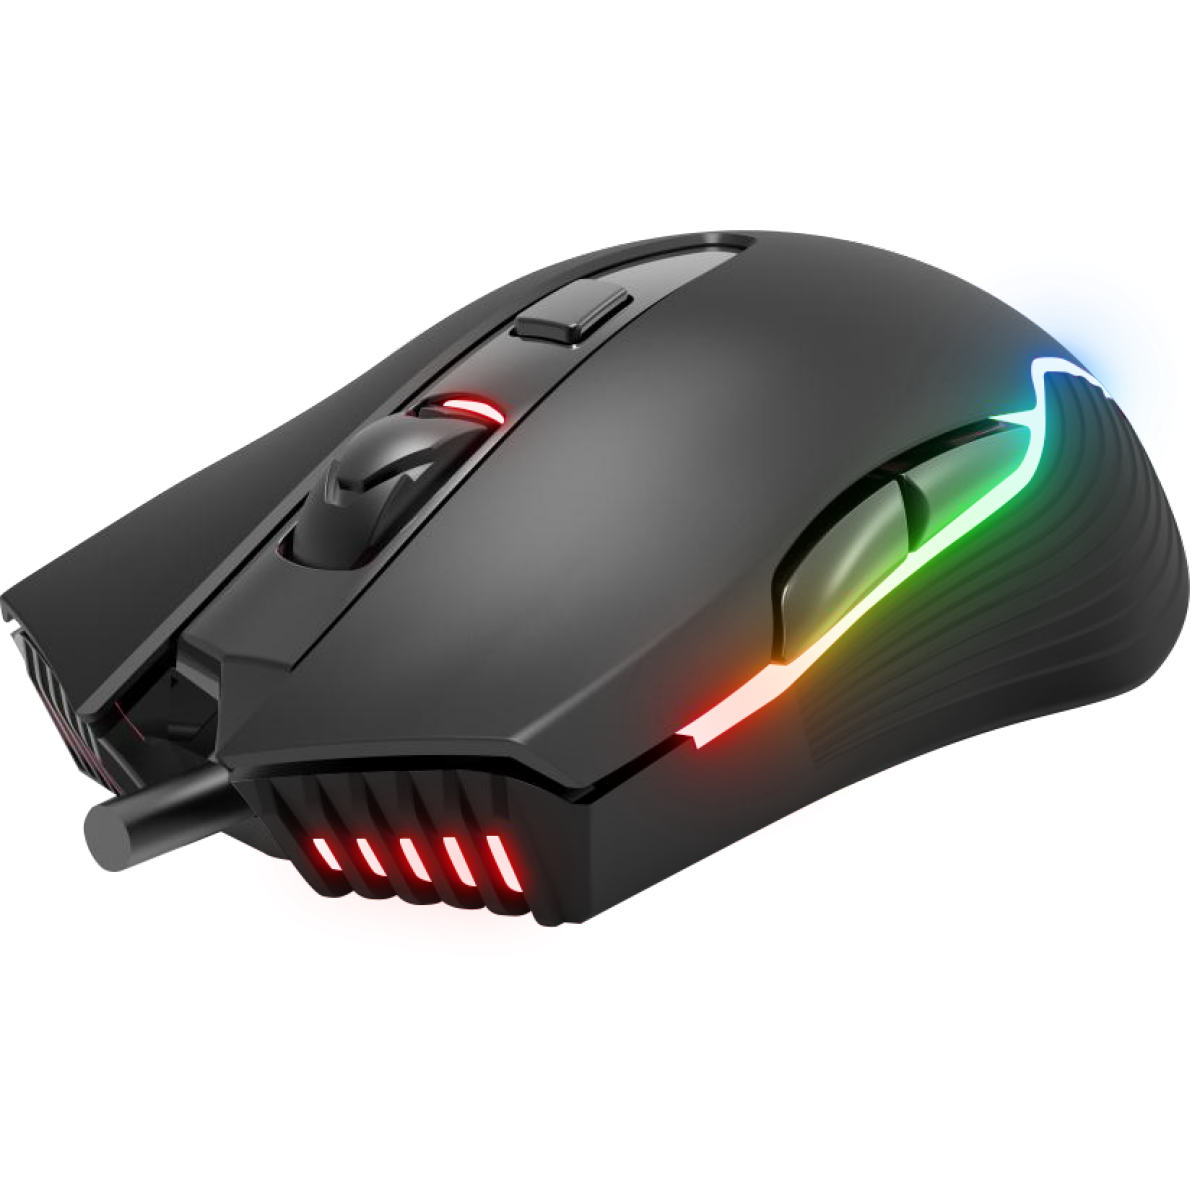 Mouse Gamer KWG Orion M1, 7000 DPI, 6 Botões, Black